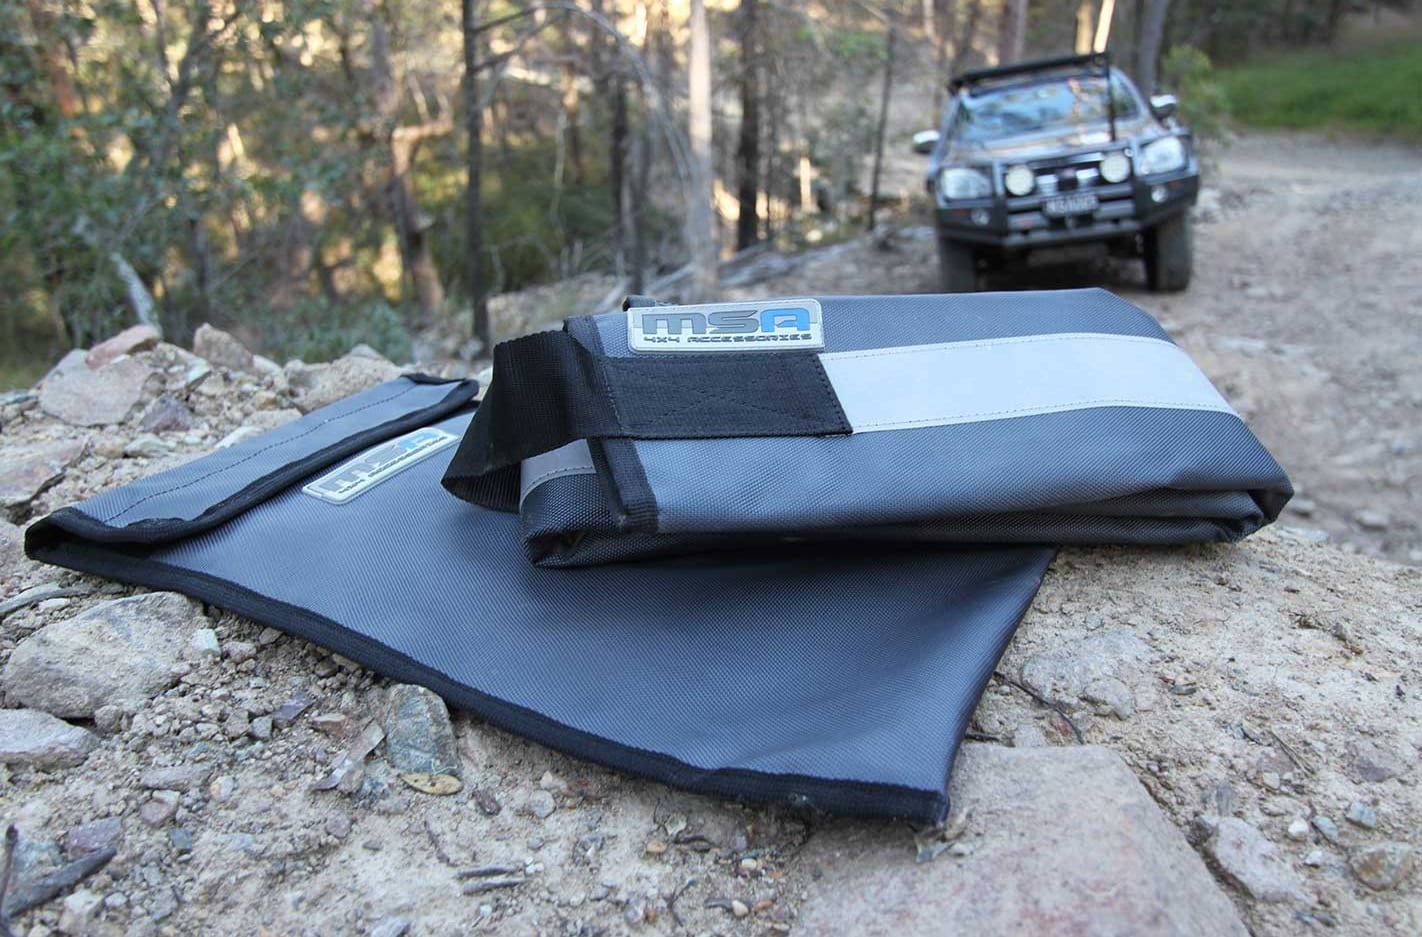 Tred recovery boards MSA 4x4 winch rope protector